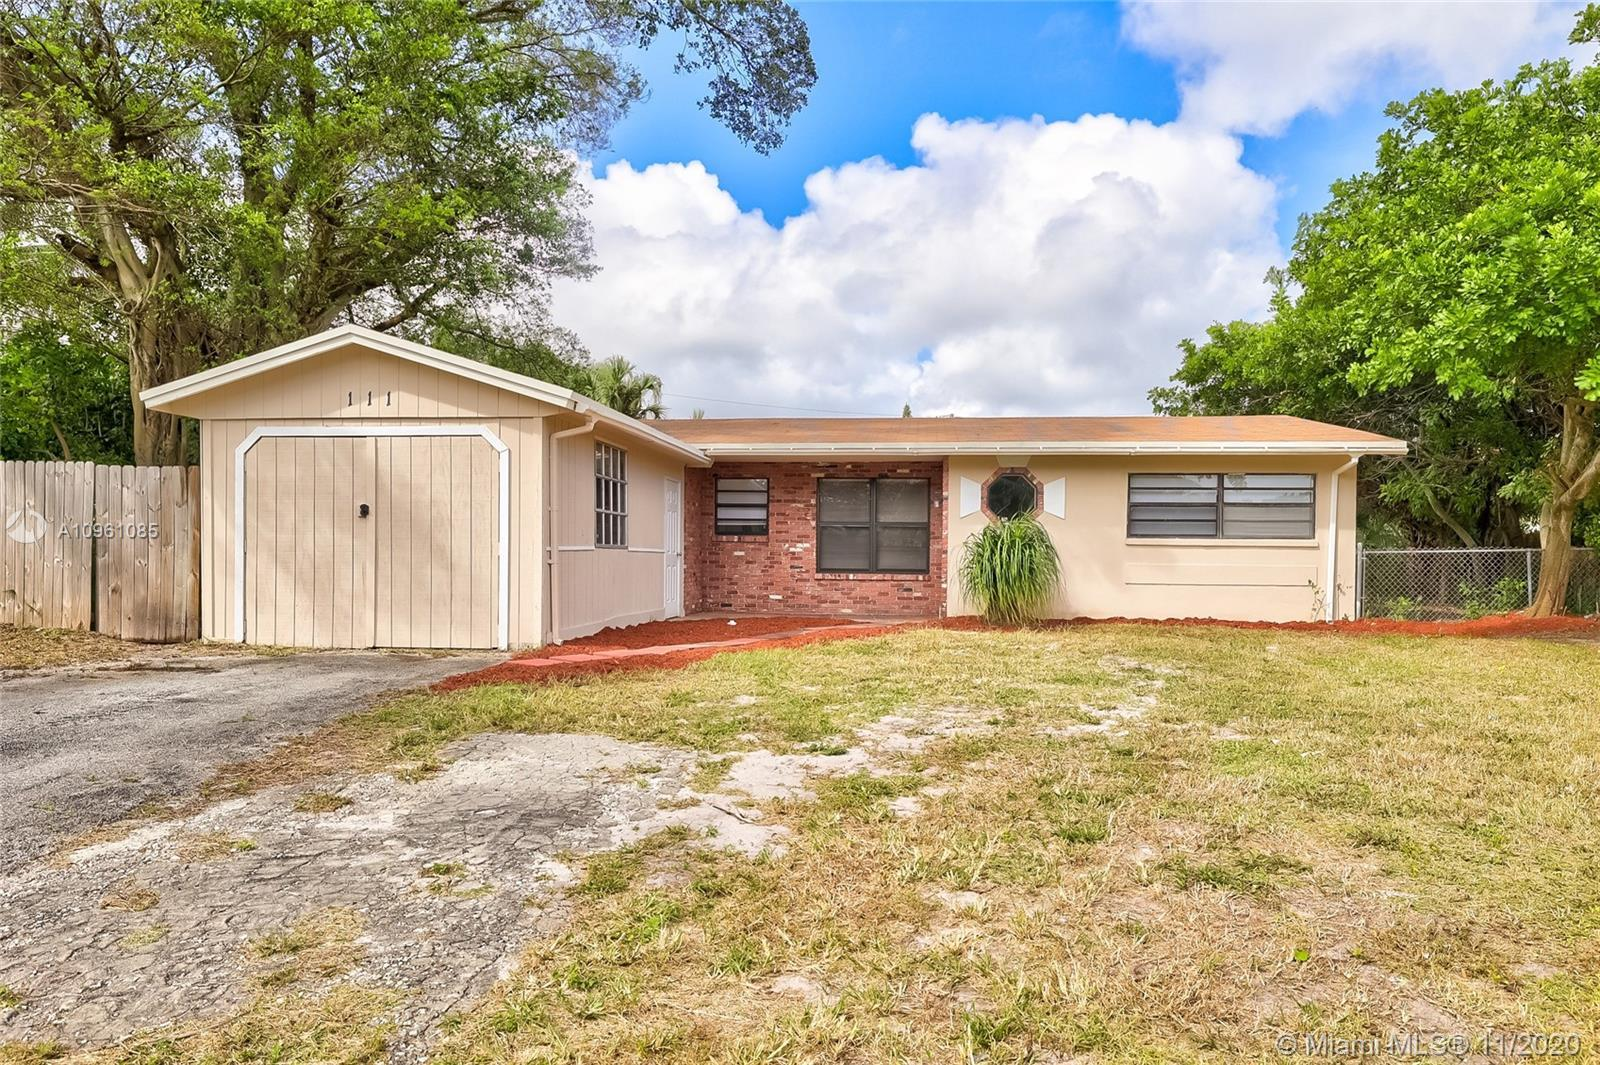 Beautifully remodeled 3 bedroom, 2 bathroom 1 story home in Sky Lake with no HOA! This home features